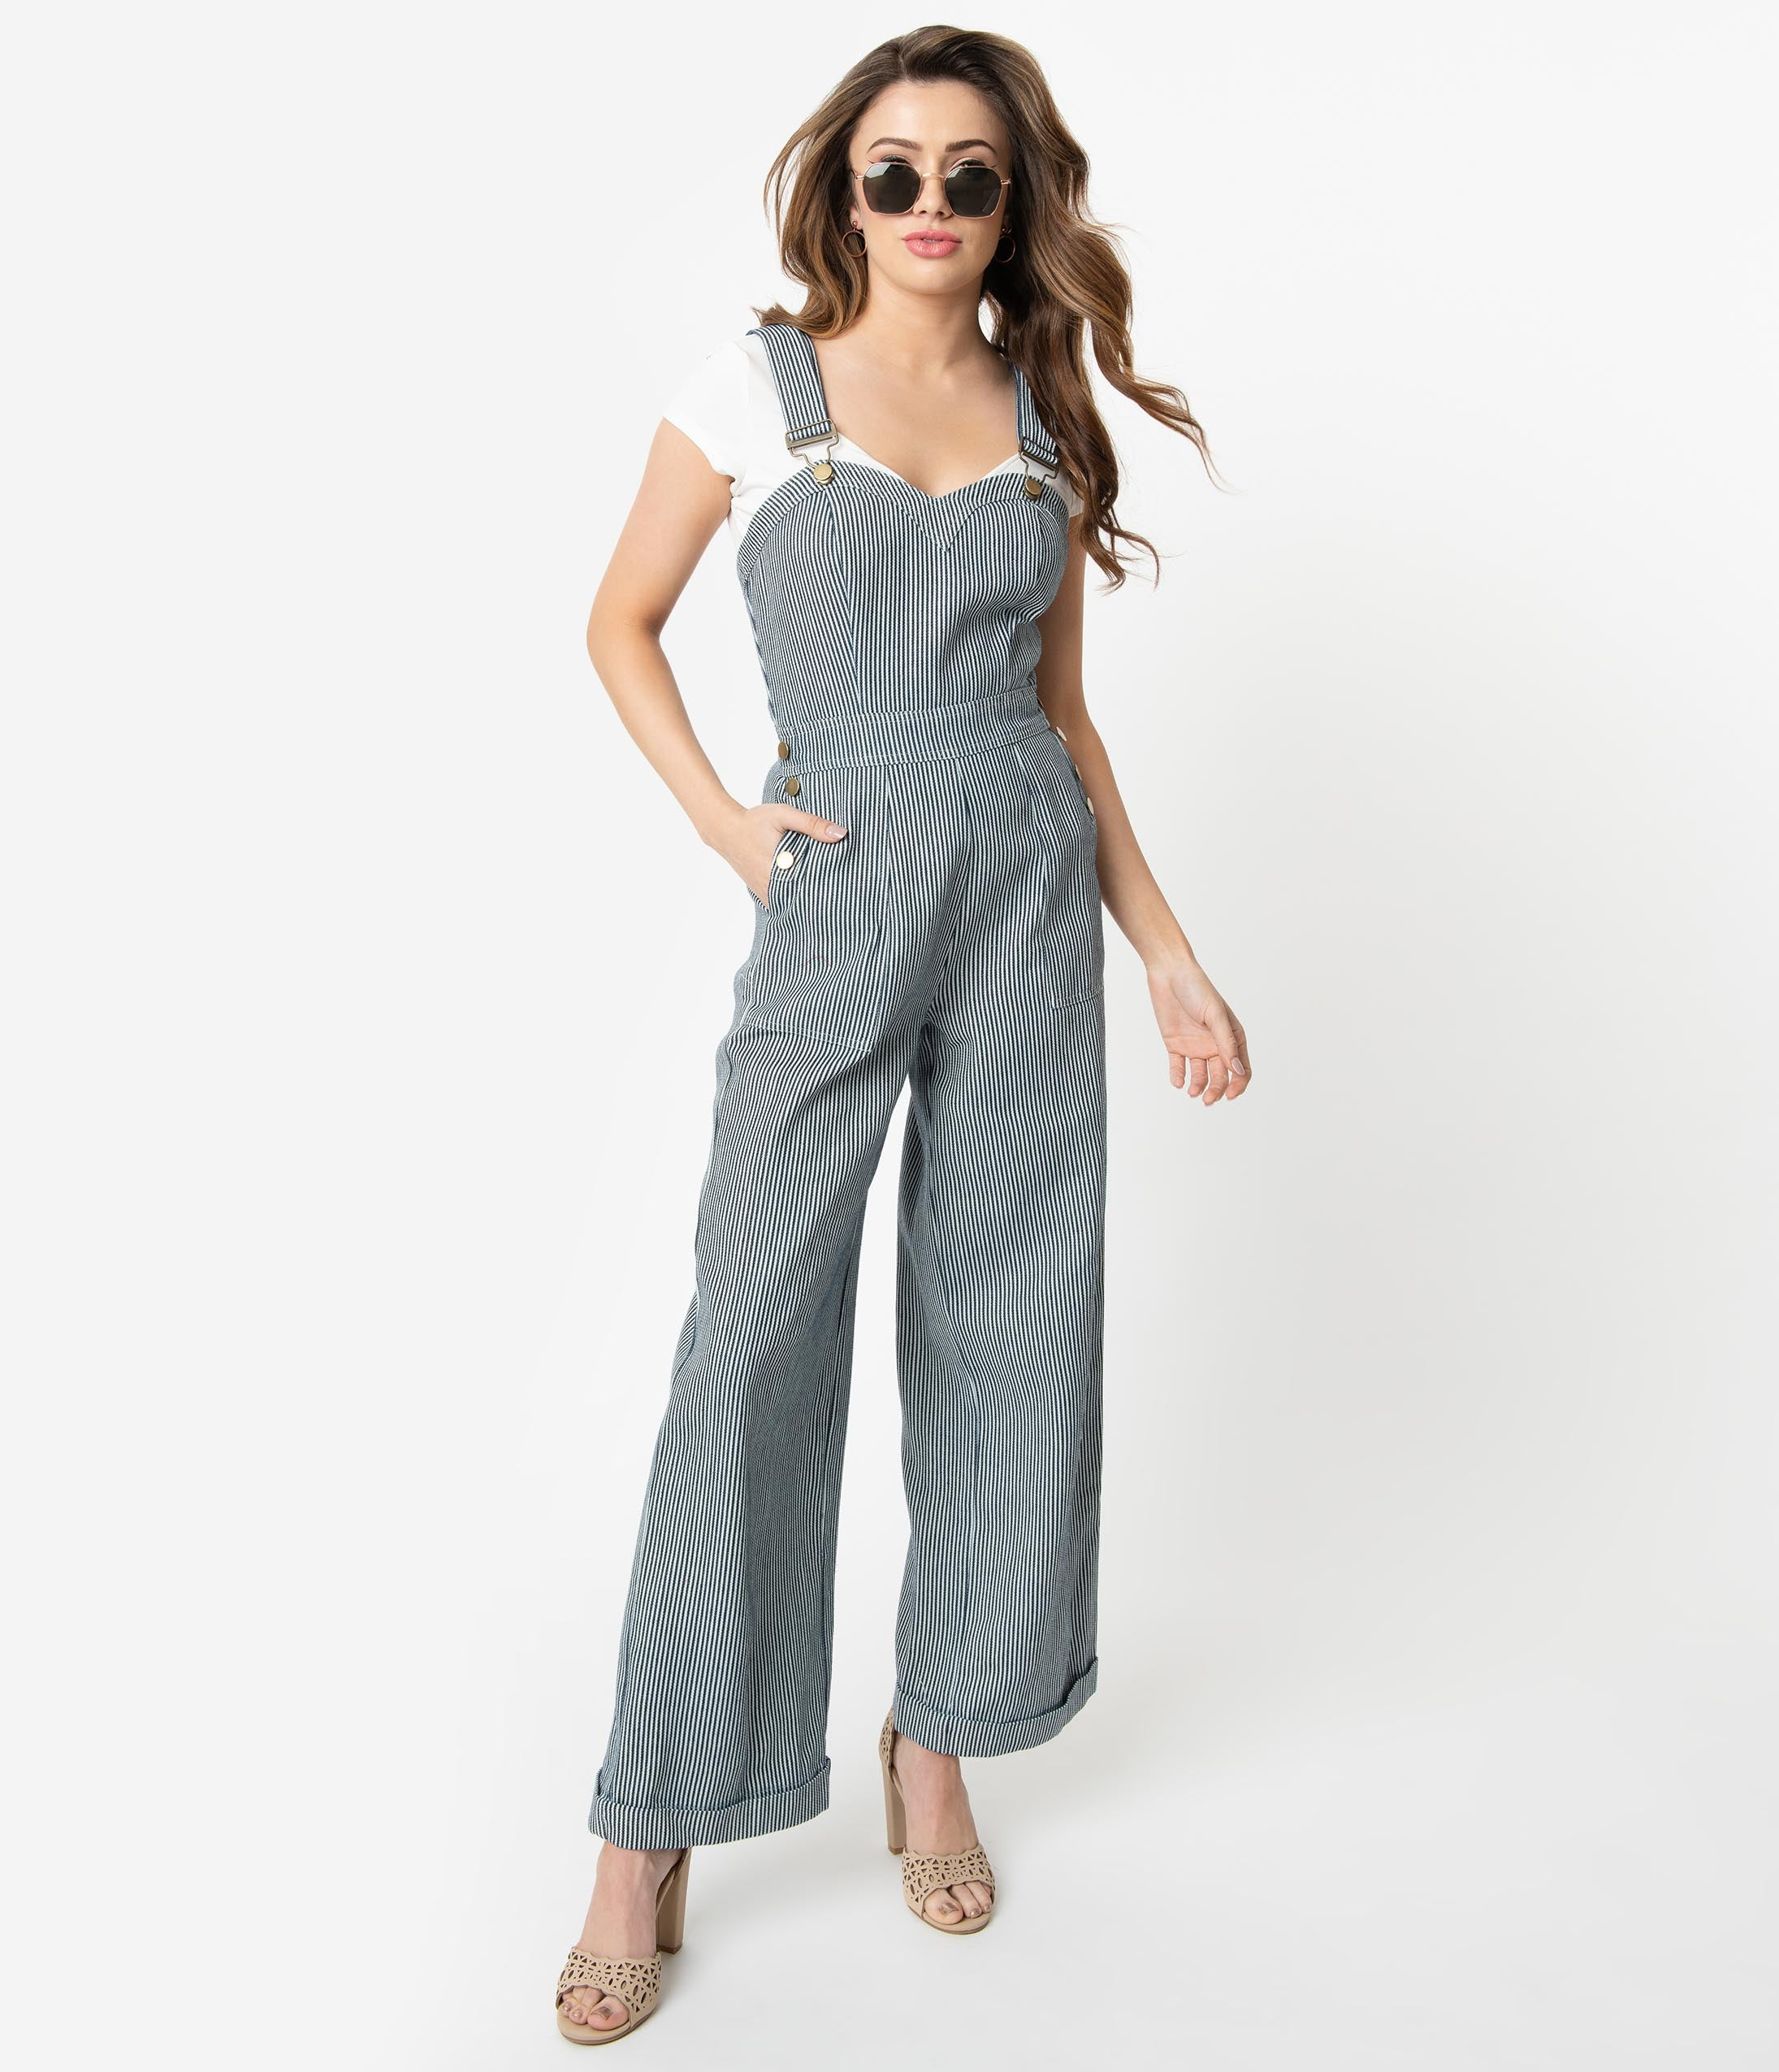 Voodoo Vixen Anthea Fitted Stripe Overalls Vintage style